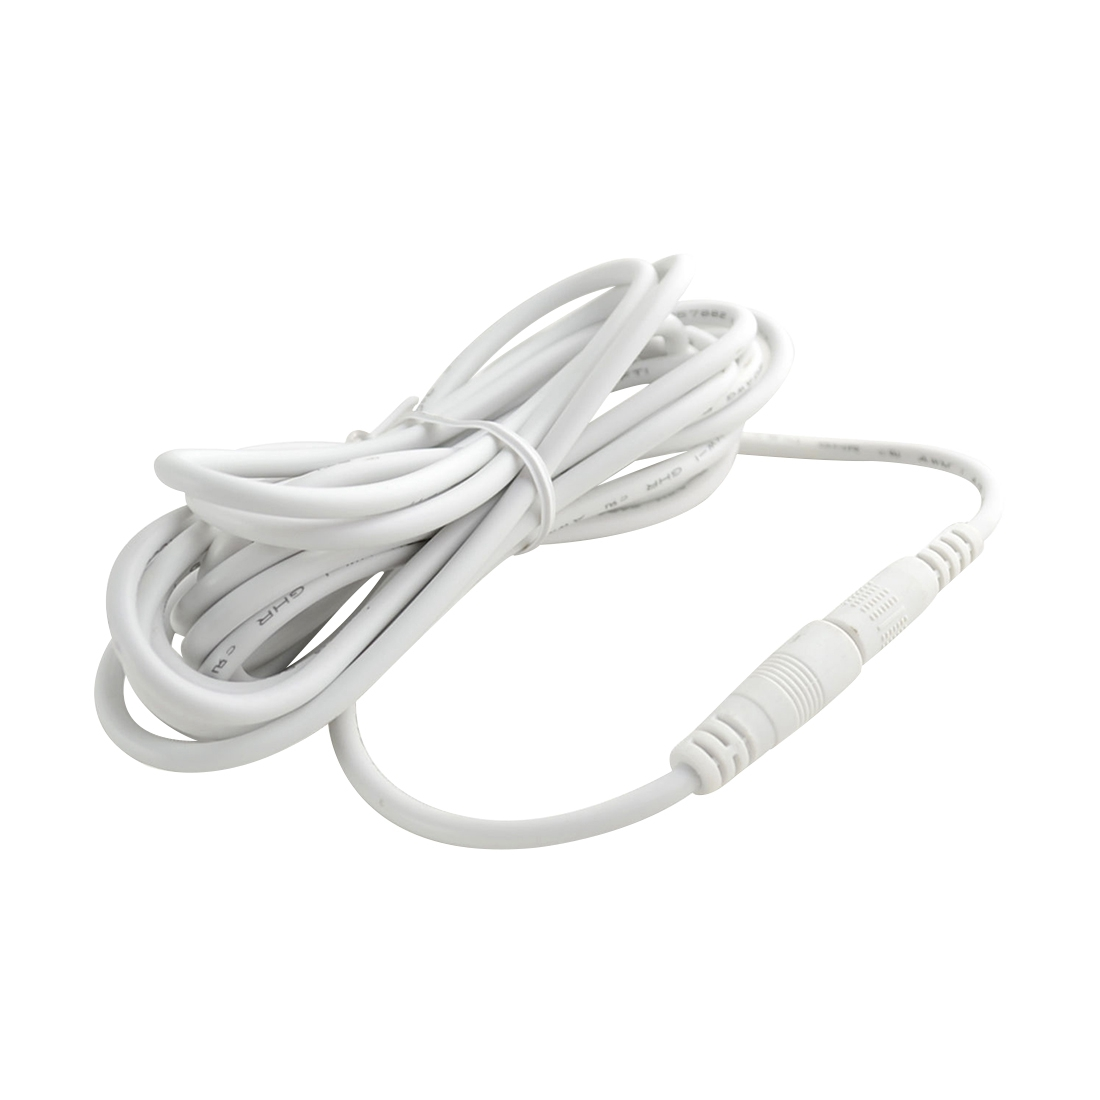 MOOL 10 Foot 3M IP Camera Power Adapter Extension Cable Extension AC Power Cord